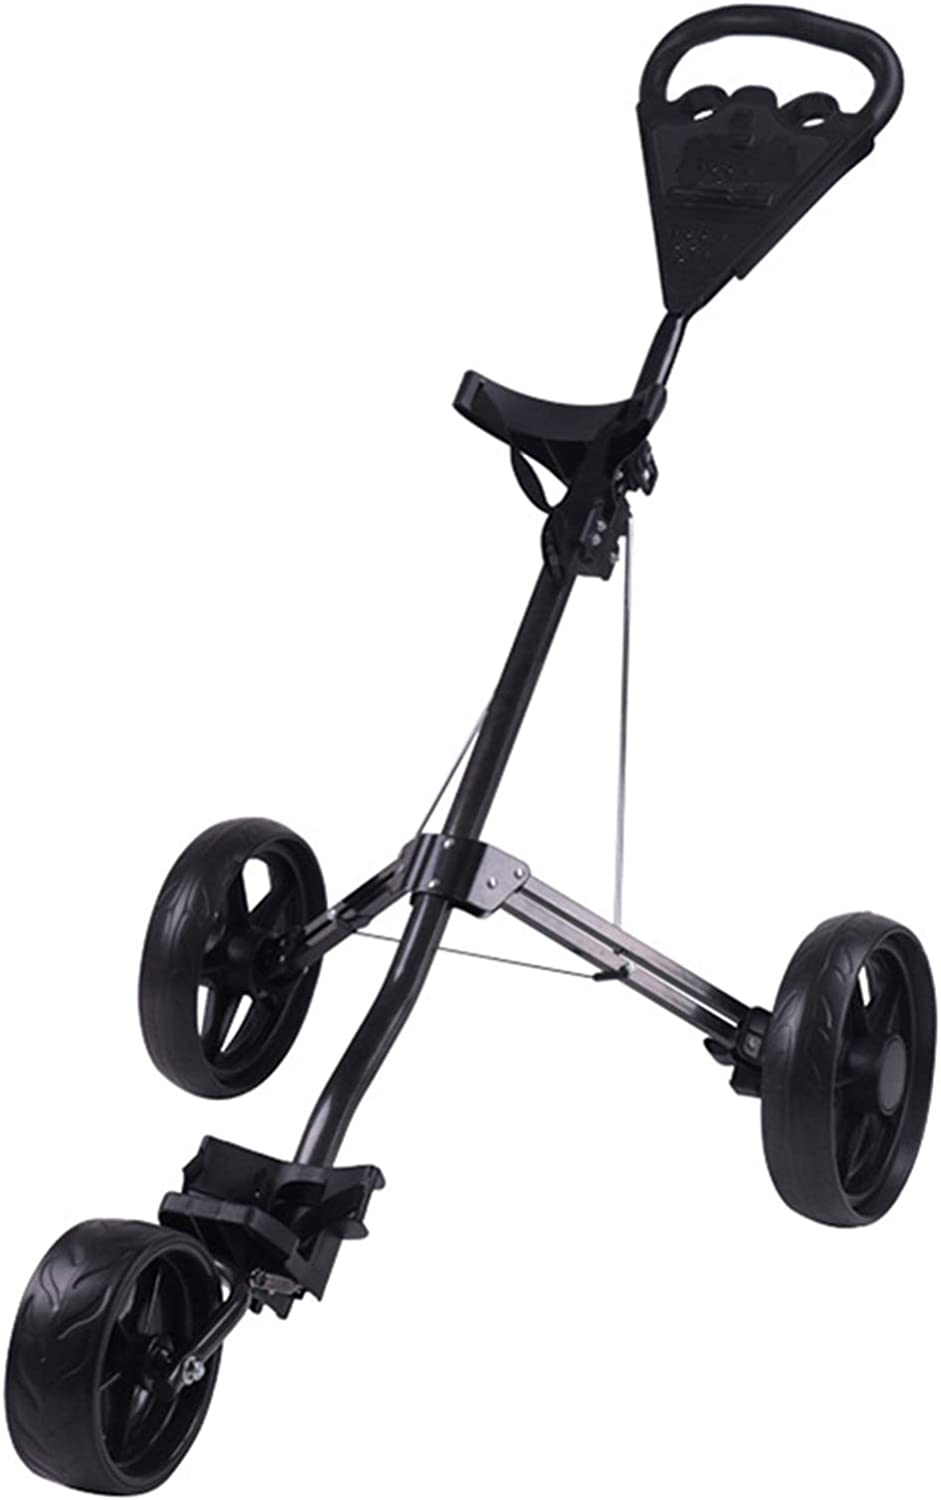 All stores are sold Golf Push Cart Foldable Wheels 3 Lightweight Raleigh Mall Pull